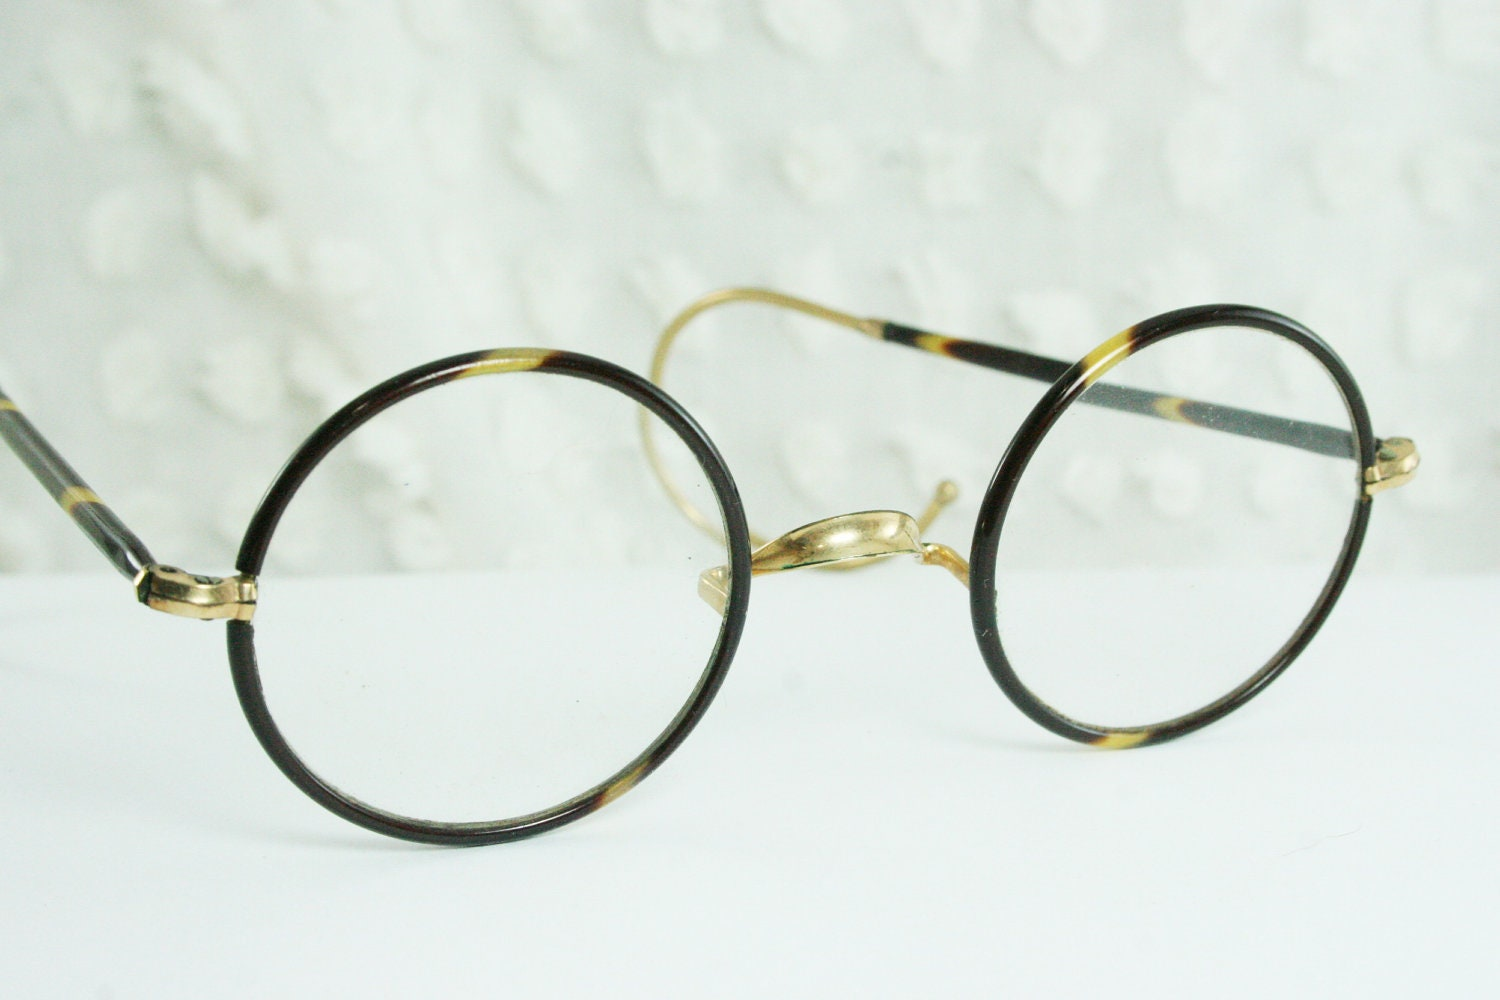 30s Glasses 1920's Eyeglasses Round Tortoise Circle by